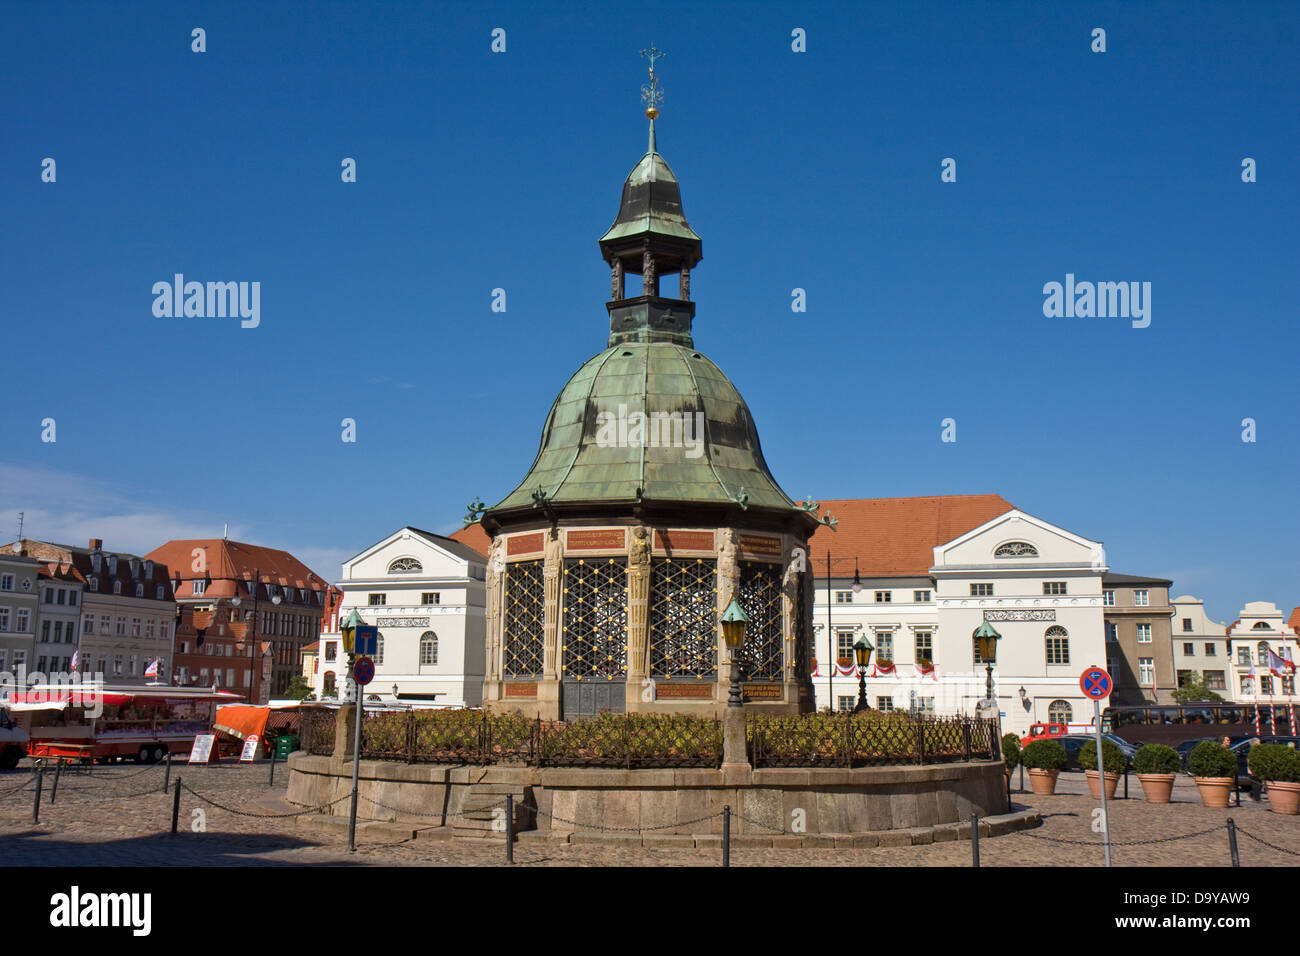 Europe, Germany, Mecklenburg-Western Pomerania, Wismar,Wasserkunst at the marketsquare - Stock Image